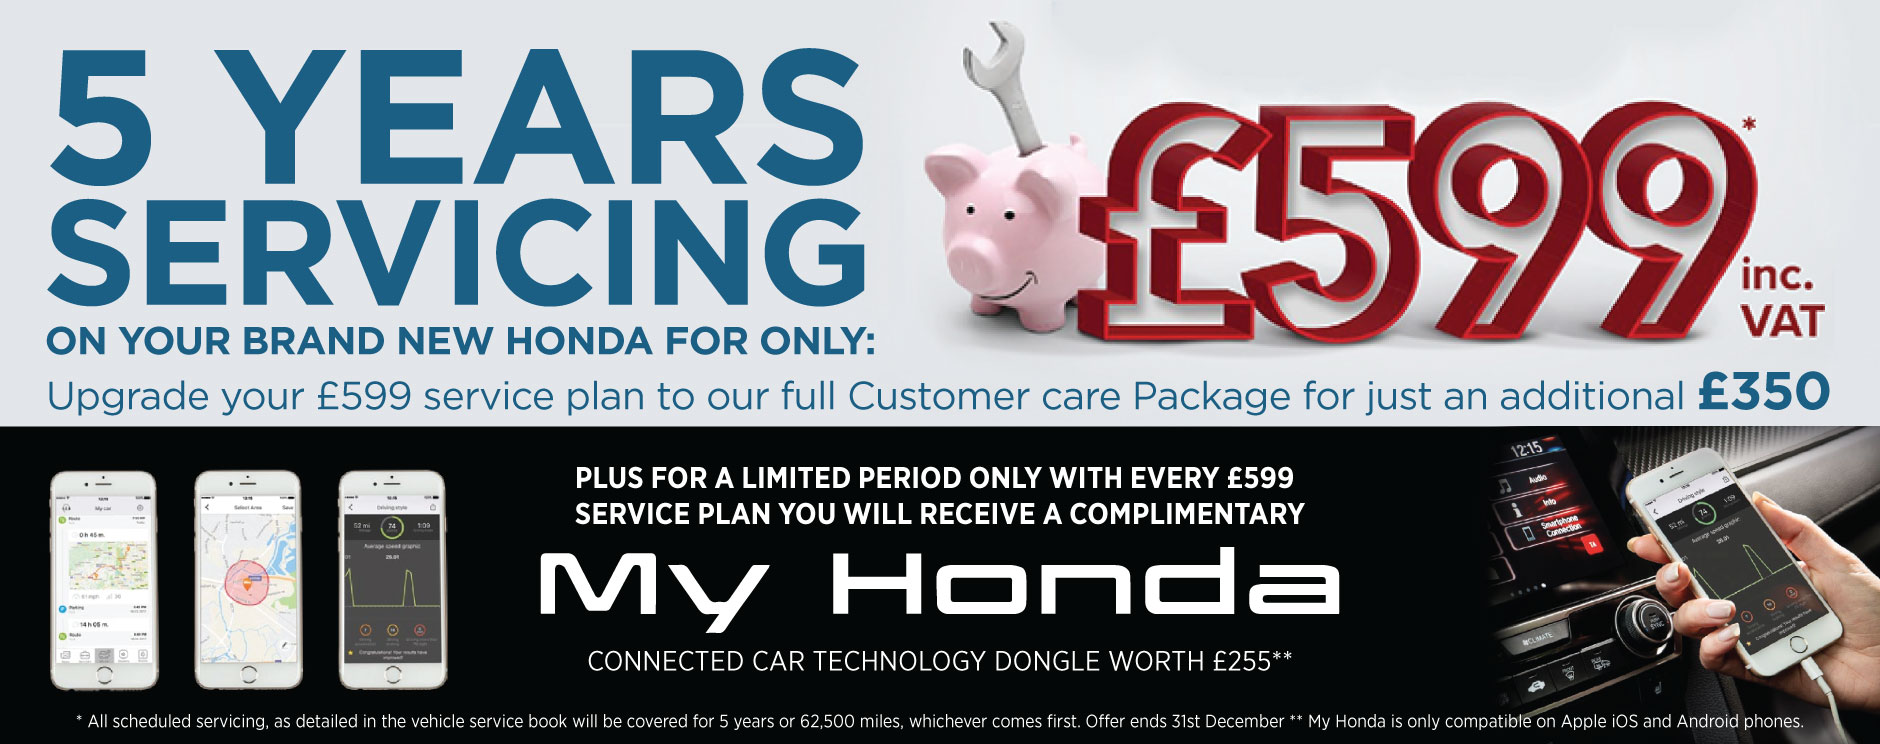 5 Years Servicing offer